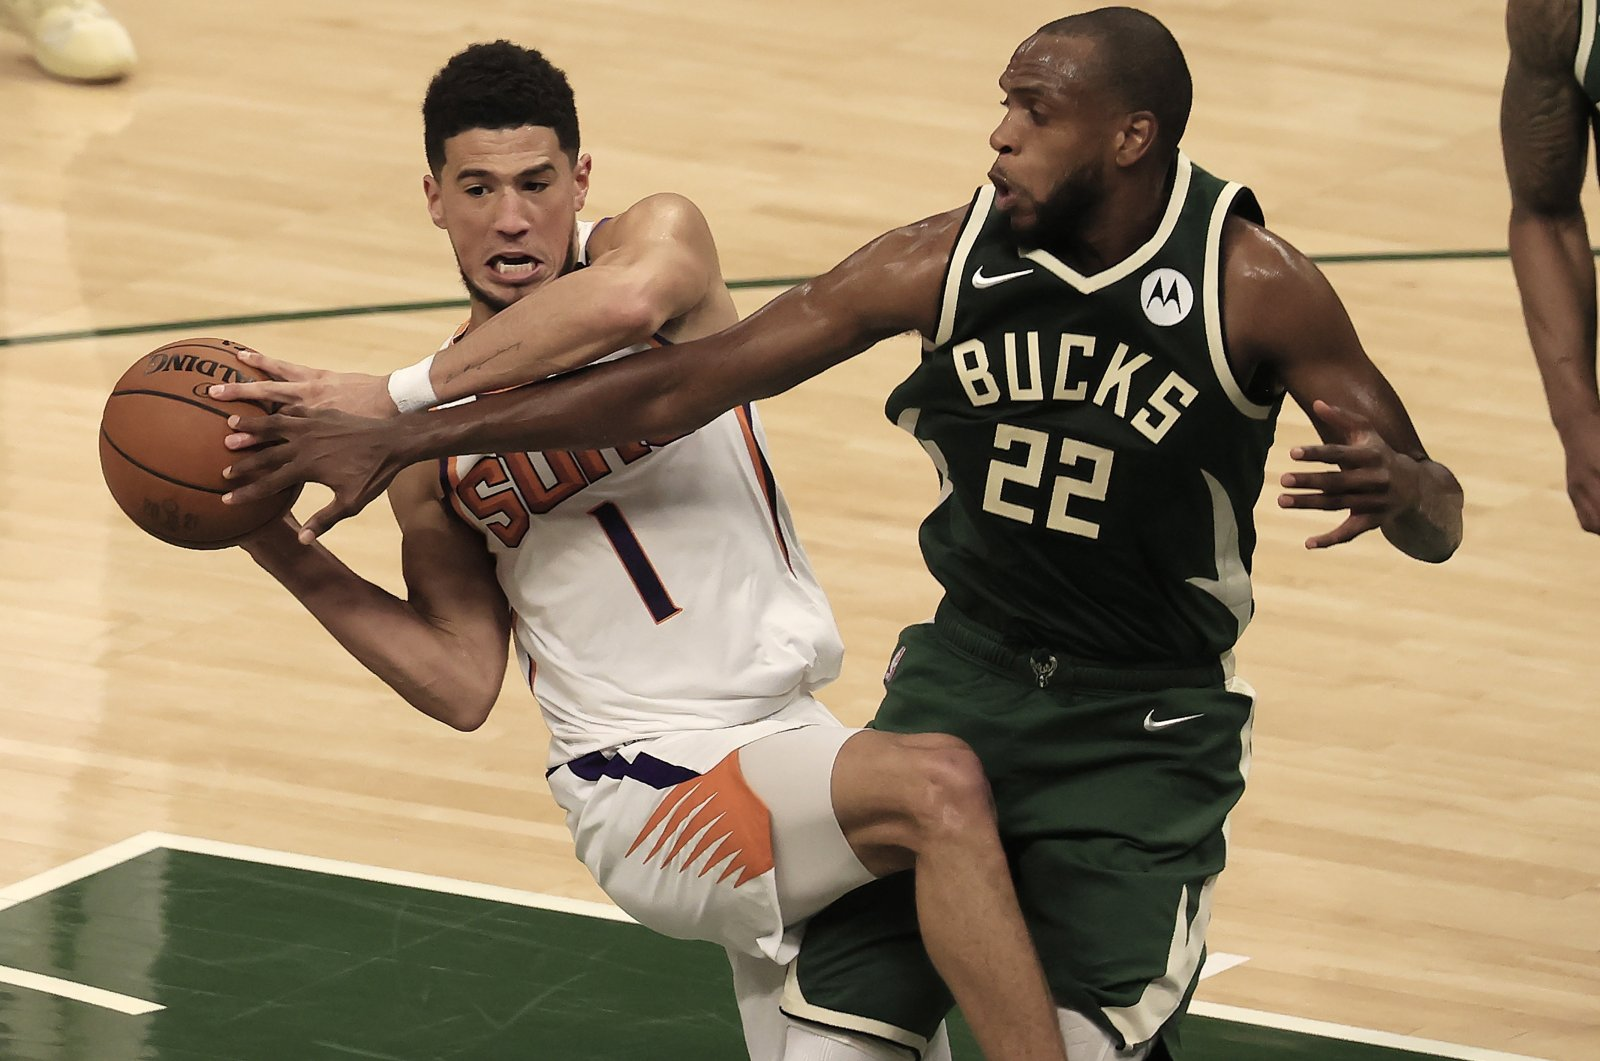 Milwaukee Bucks forward Khris Middleton (R) guards Phoenix Suns guard Devin Booker (L) during Game 3 of the 2021 NBA Finals at Fiserv Forum in Milwaukee, Wisconsin, U.S., July 11, 2021. (EPA Photo)